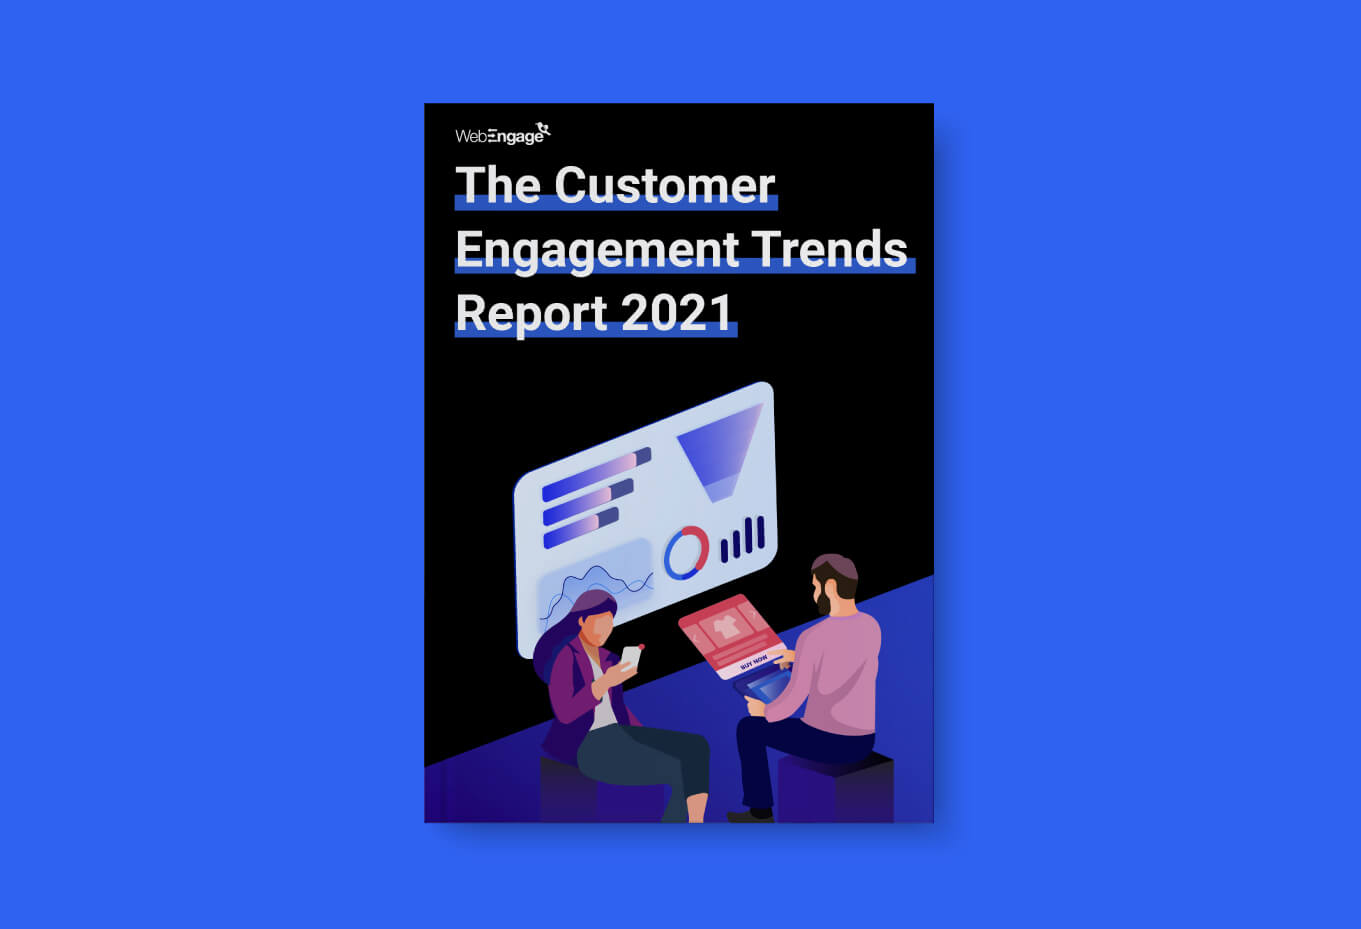 The Customer Engagement Trends Report 2021